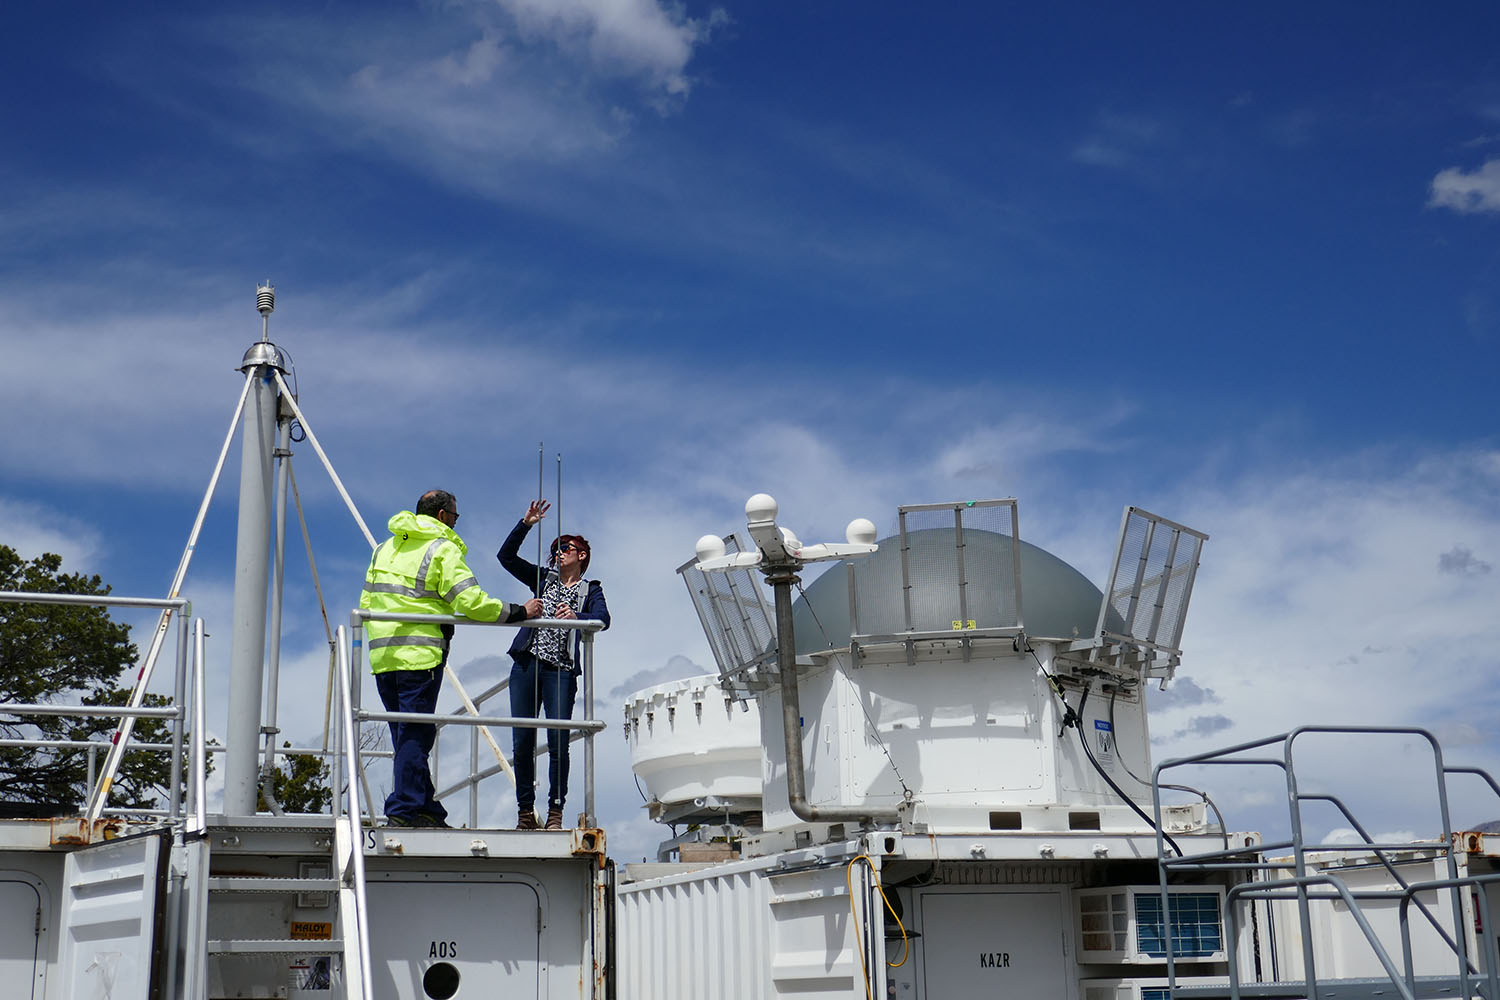 Jessie Creamean and Paul Ortega atop the Aerosol Observing System